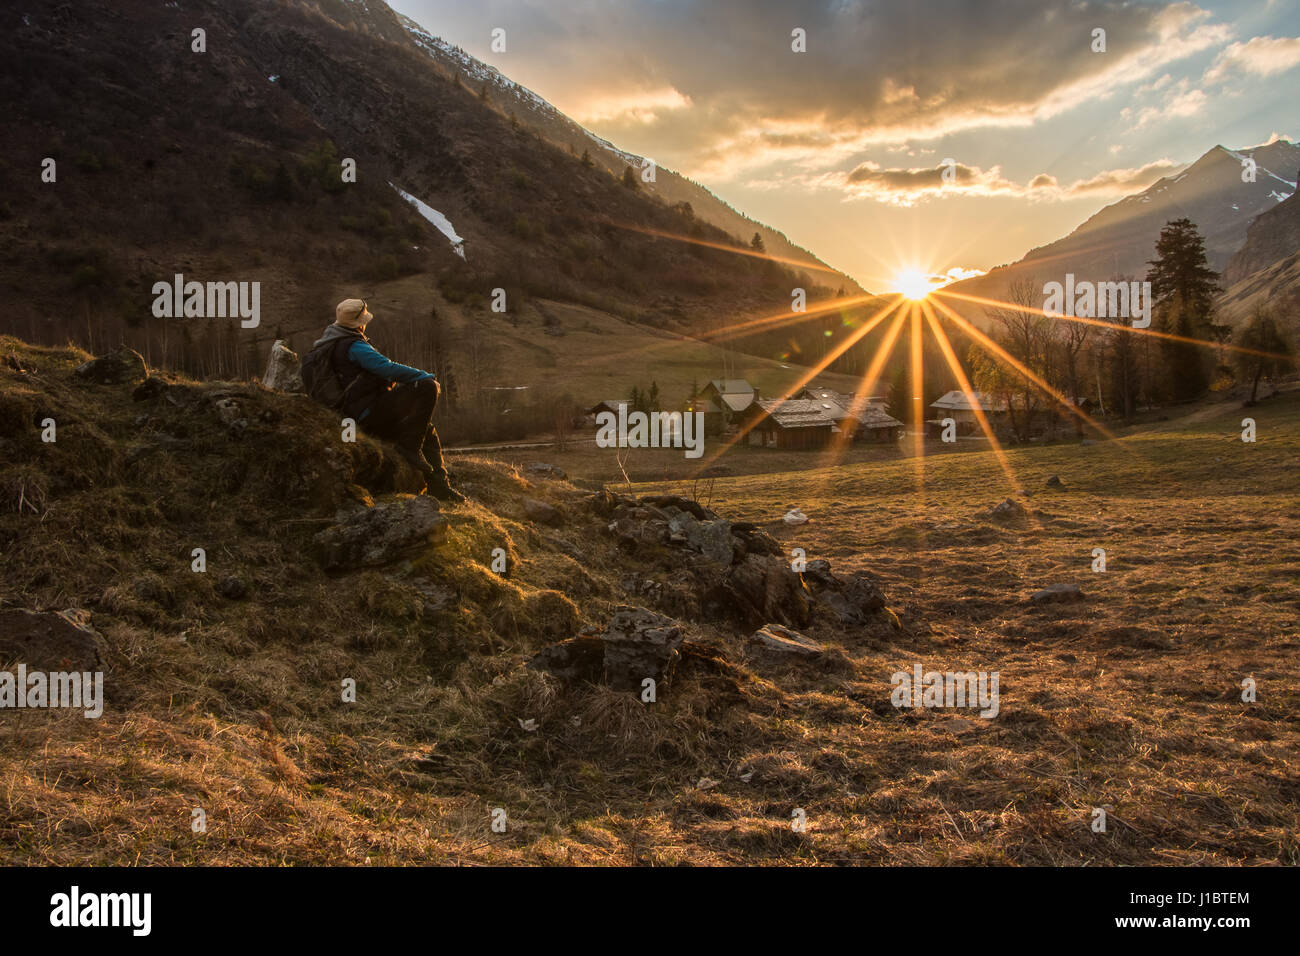 Adminring the sunset in the mountains a man hiking in the alps hikers landscape sunsets adventure outdoors lifestyle - Stock Image